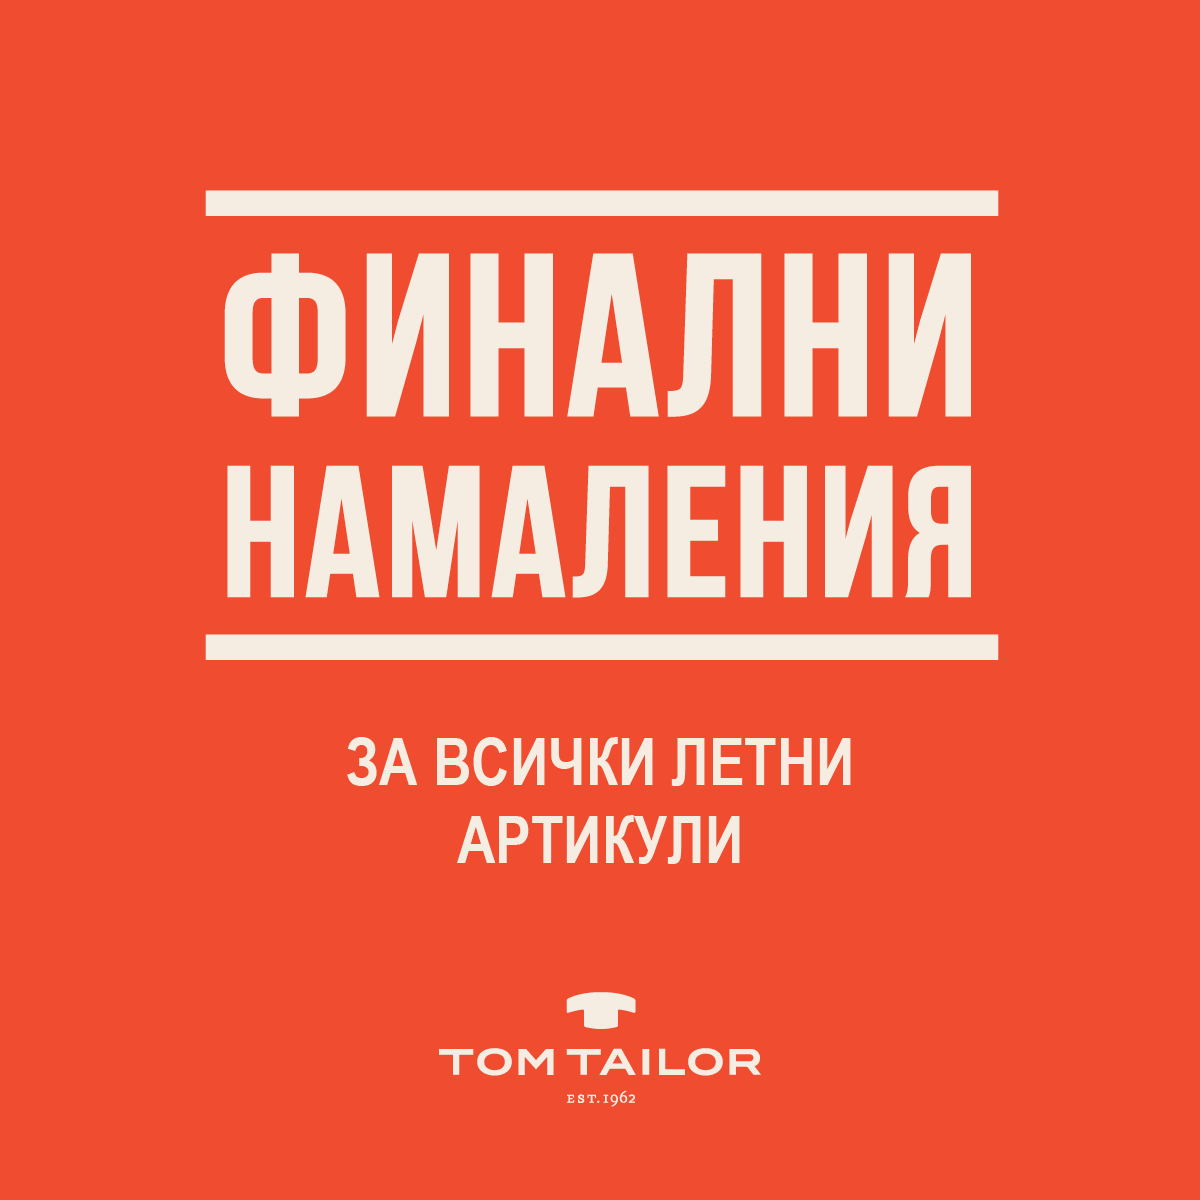 Last discounts for all summer items at Tom Tailor